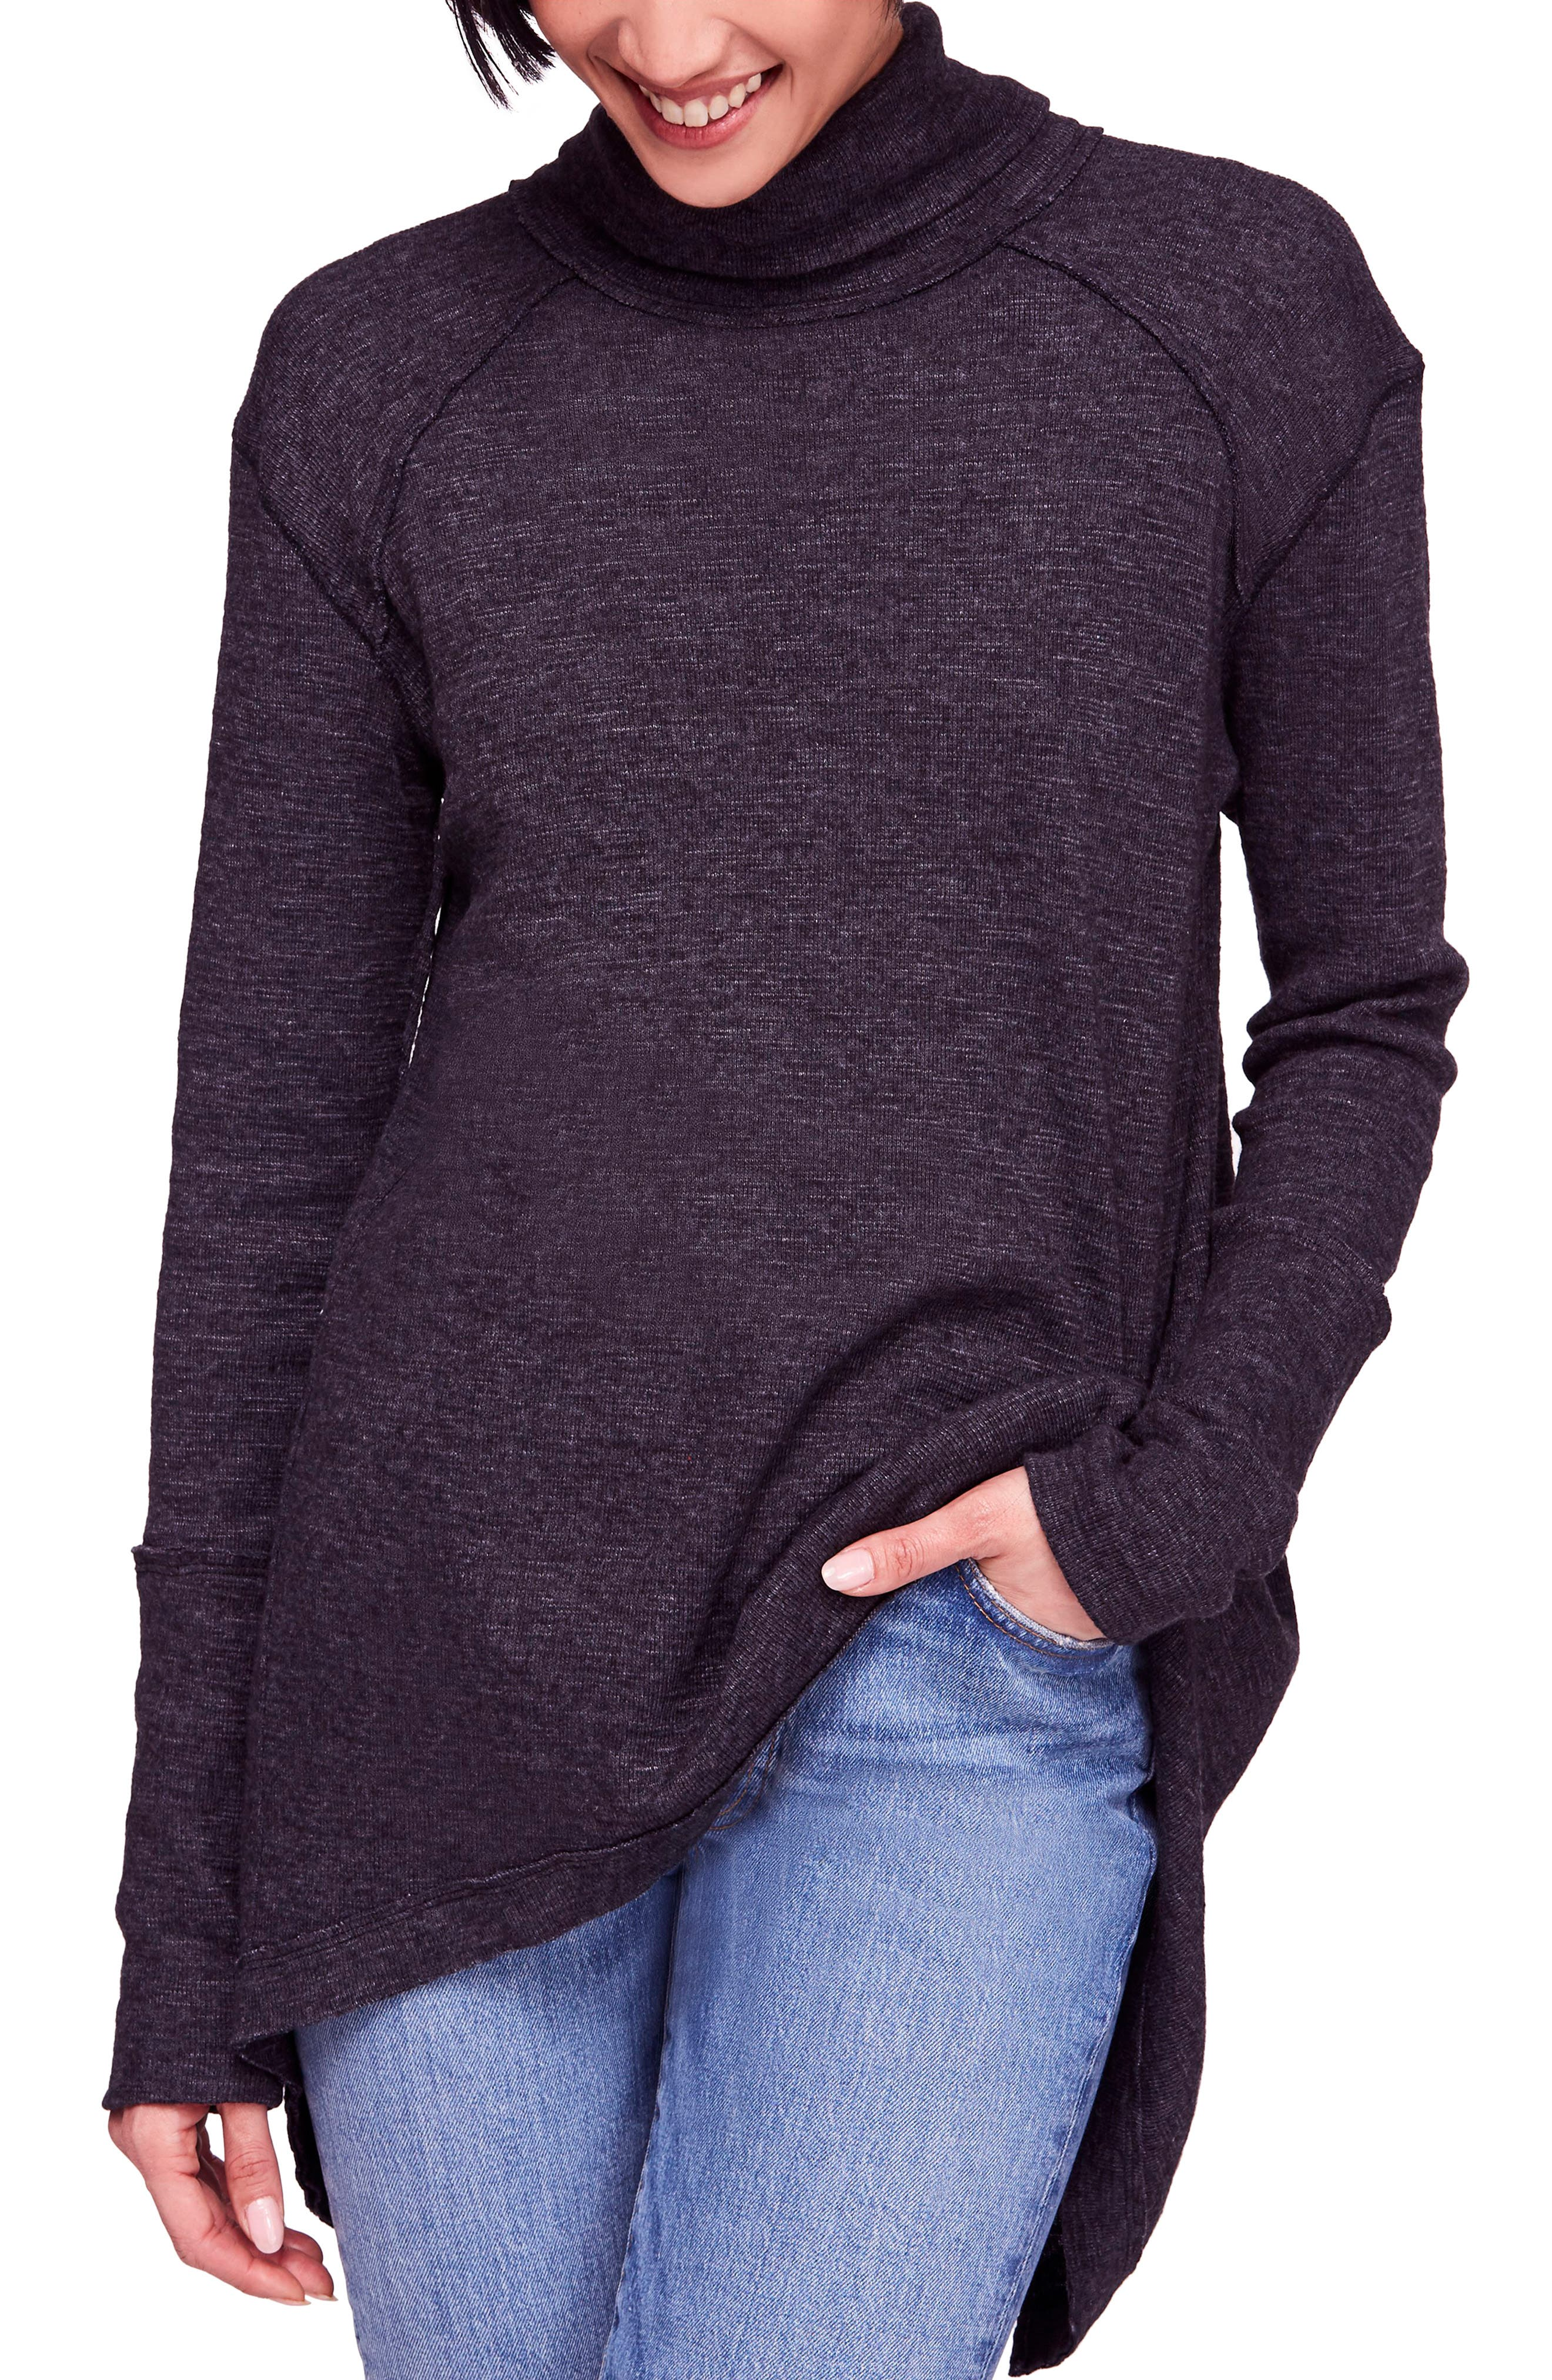 dcb973439fcb0 Women s Turtleneck Sweaters